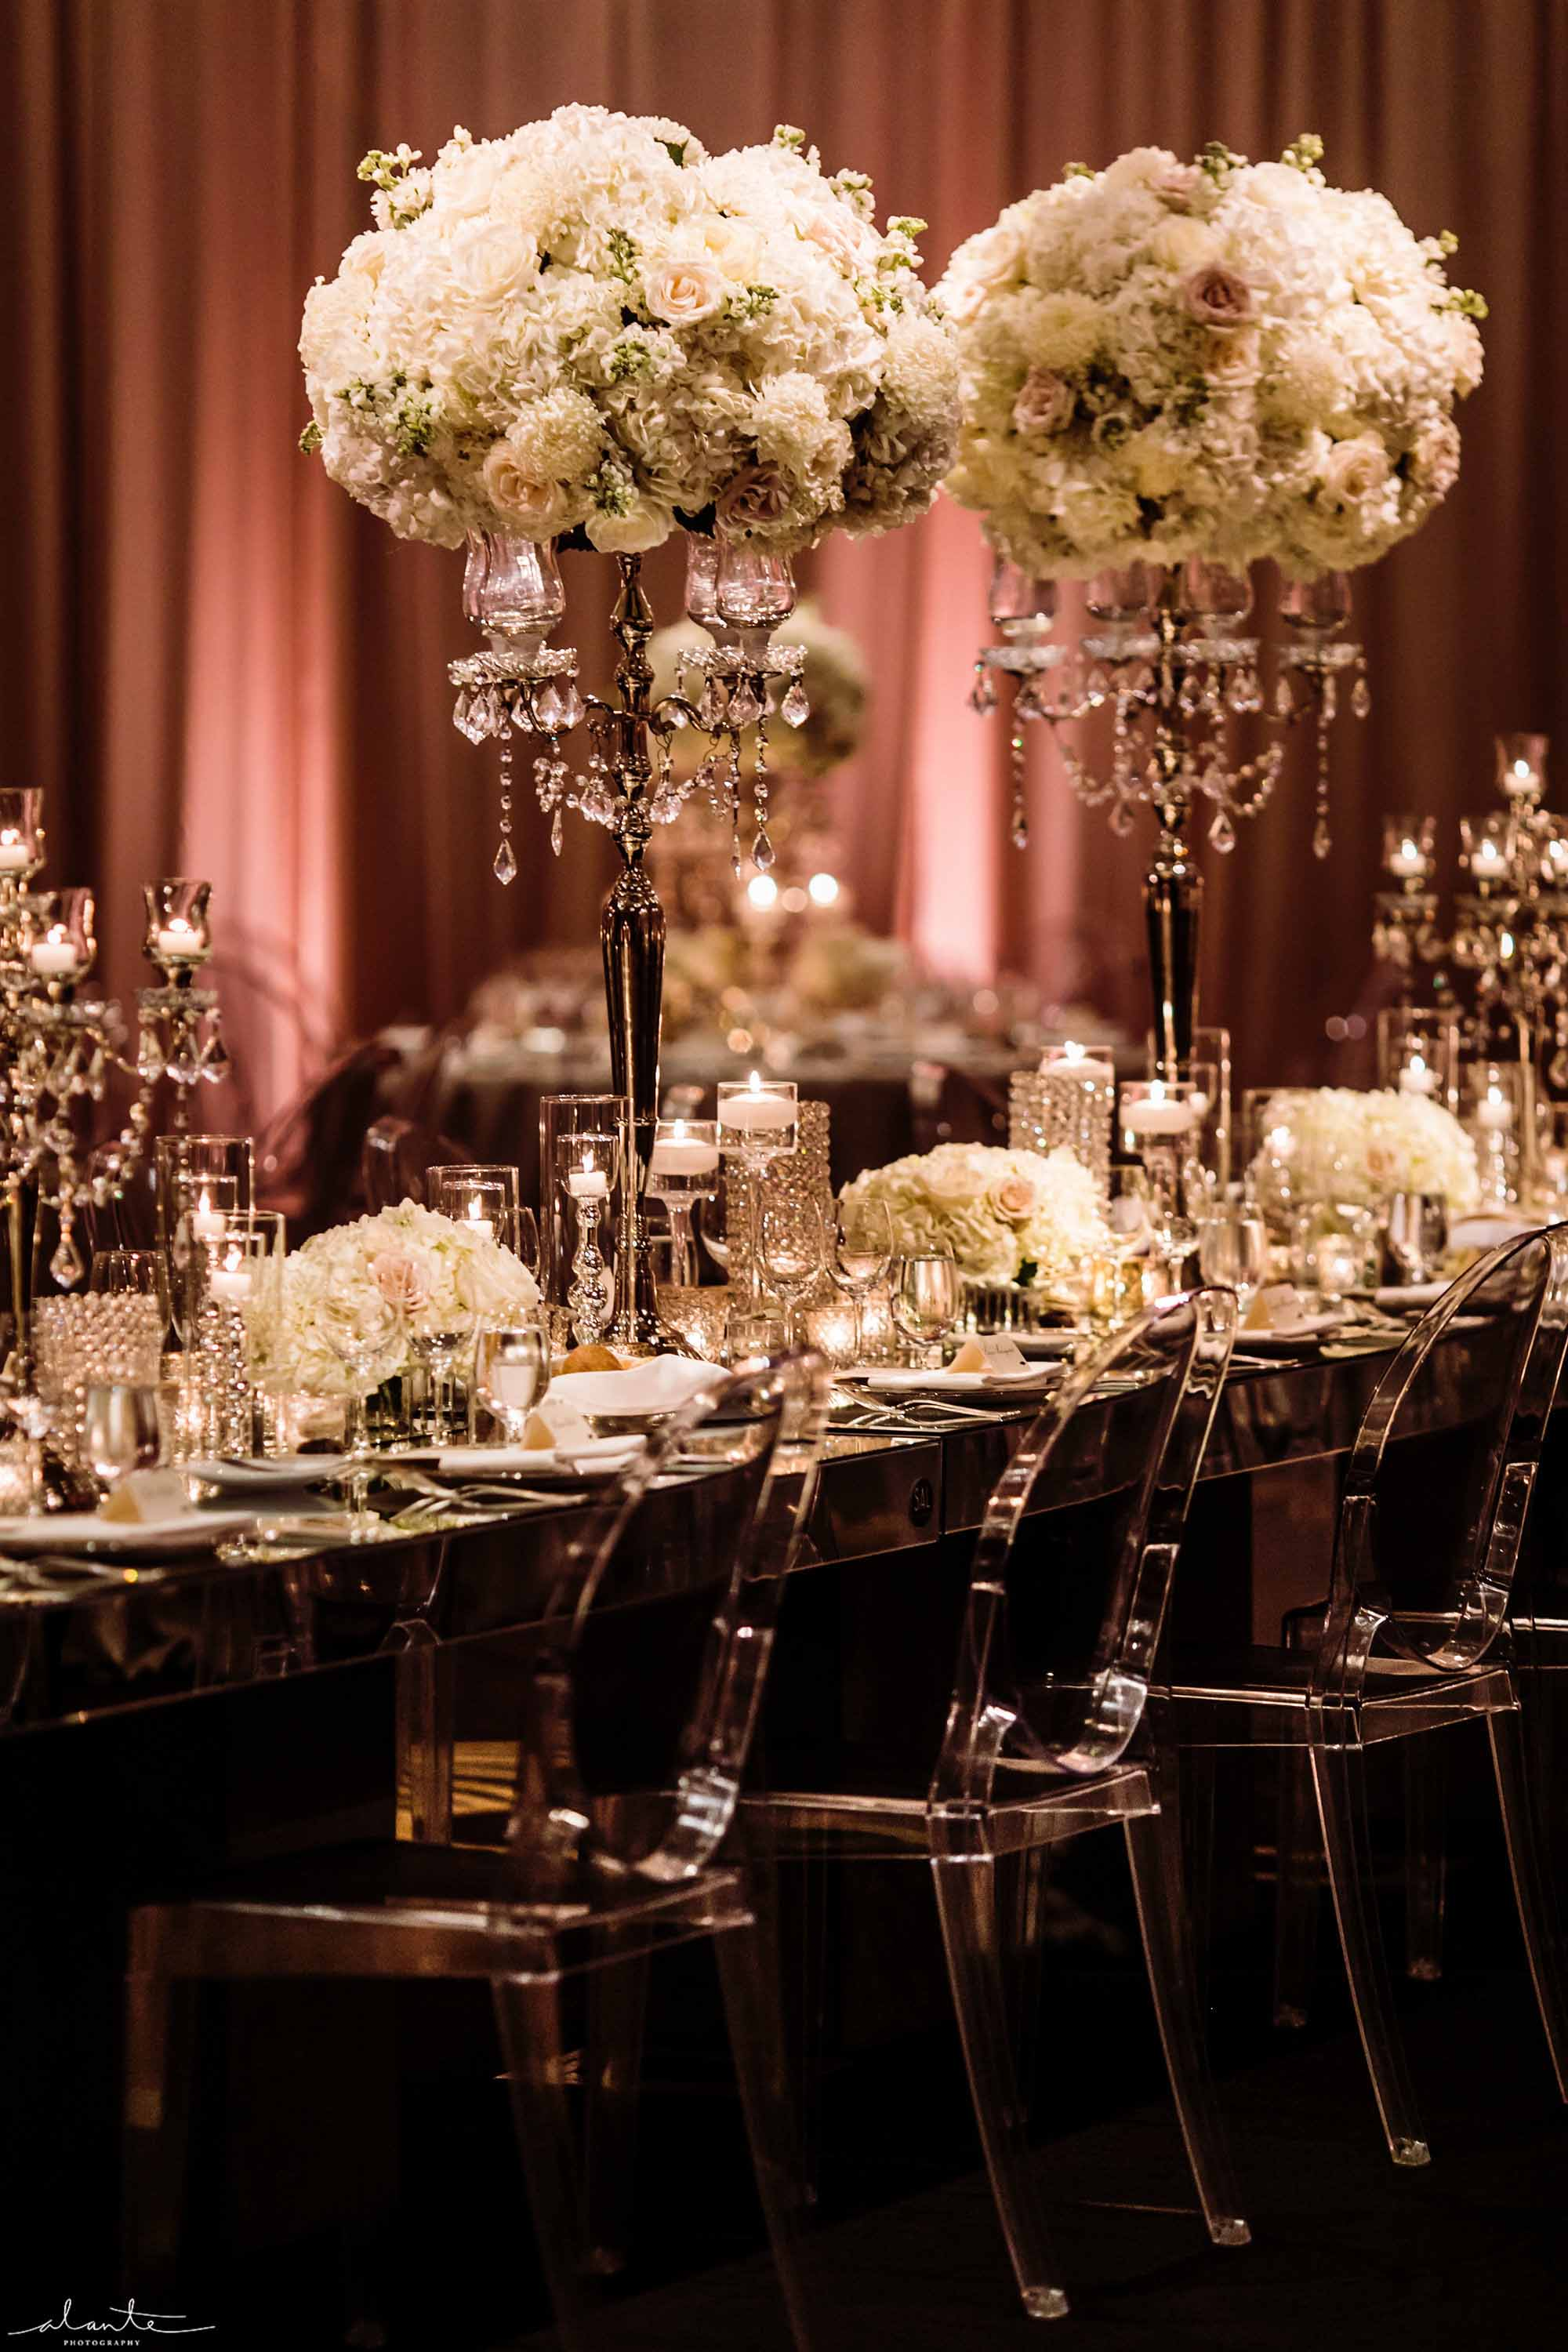 Mirrored wedding head table with tall white centerpieces - Luxury Winter Wedding at the Four Seasons by Flora Nova Design Seattle